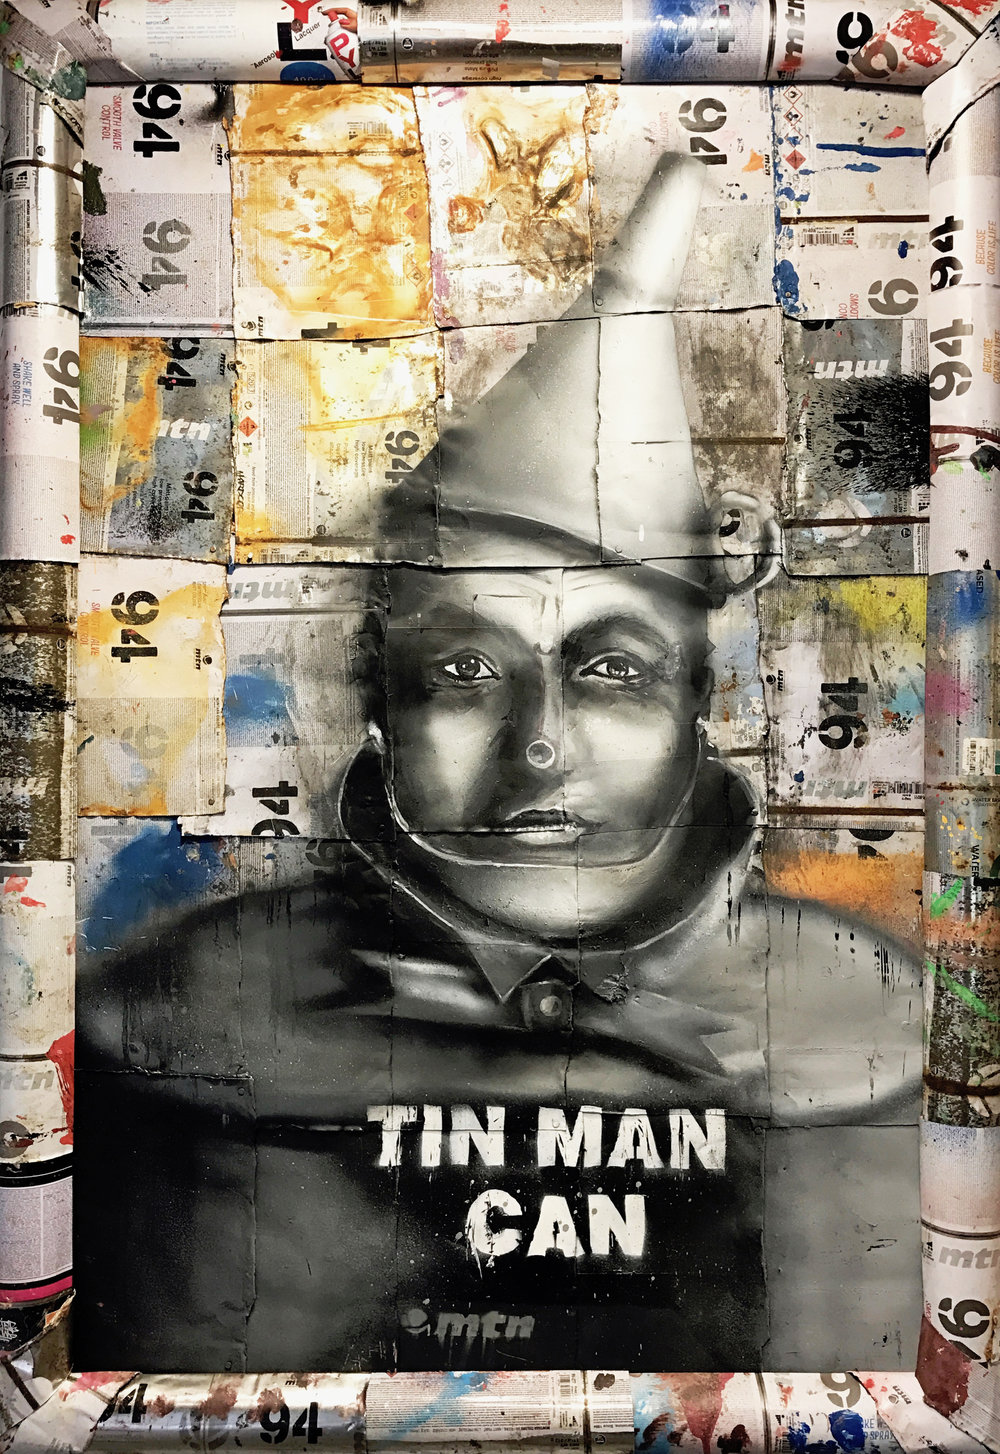 """Tin Man Can"" Stencil and Hand Spray Paint on Deconstructed Can Background 60 x 90 cm 2017"